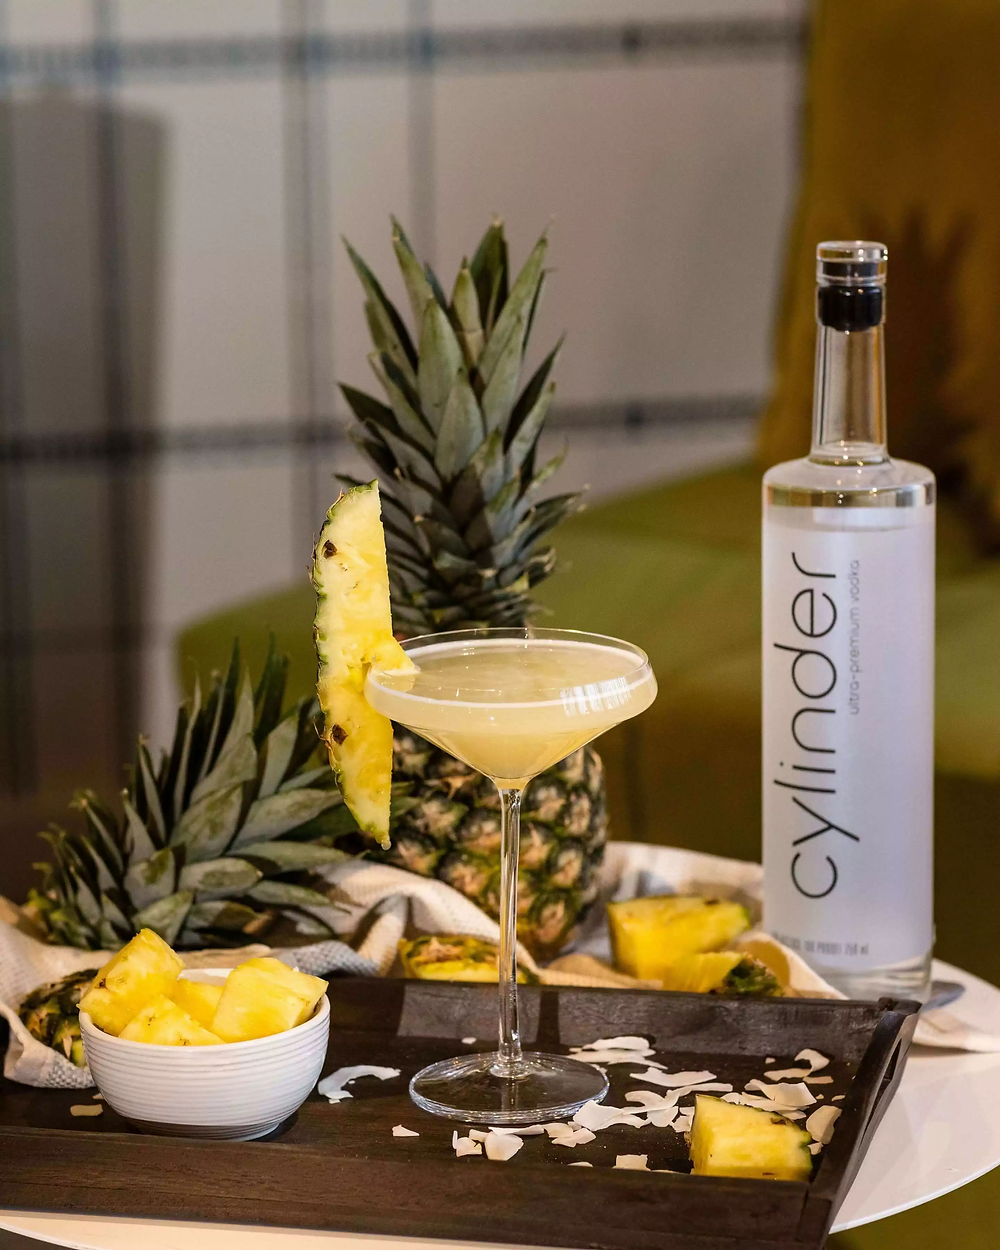 Cylinder Vodka Coconut Lychee Martini